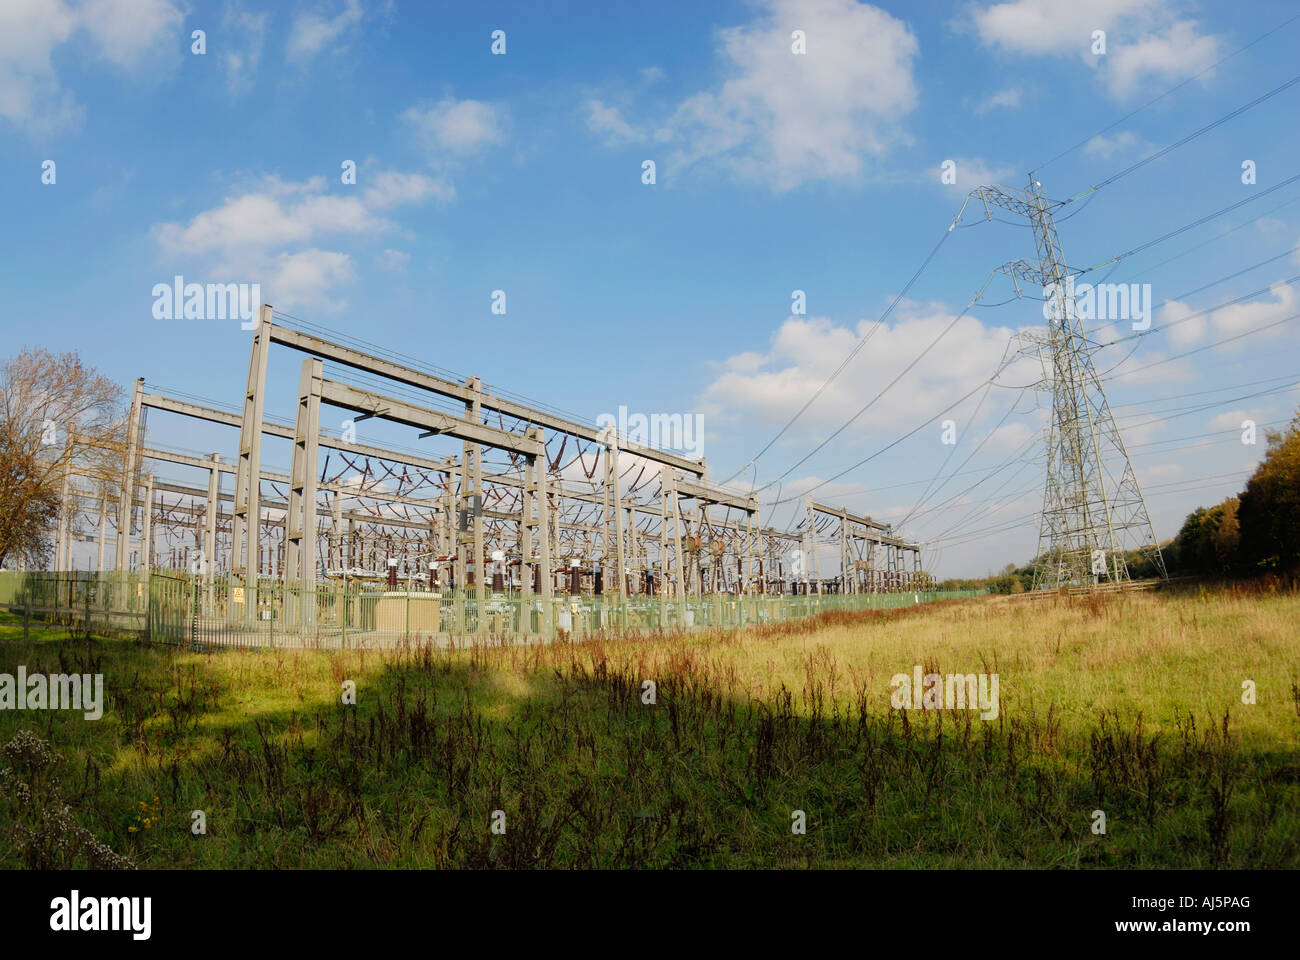 Electricity substation network near Partington in Manchester - Stock Image